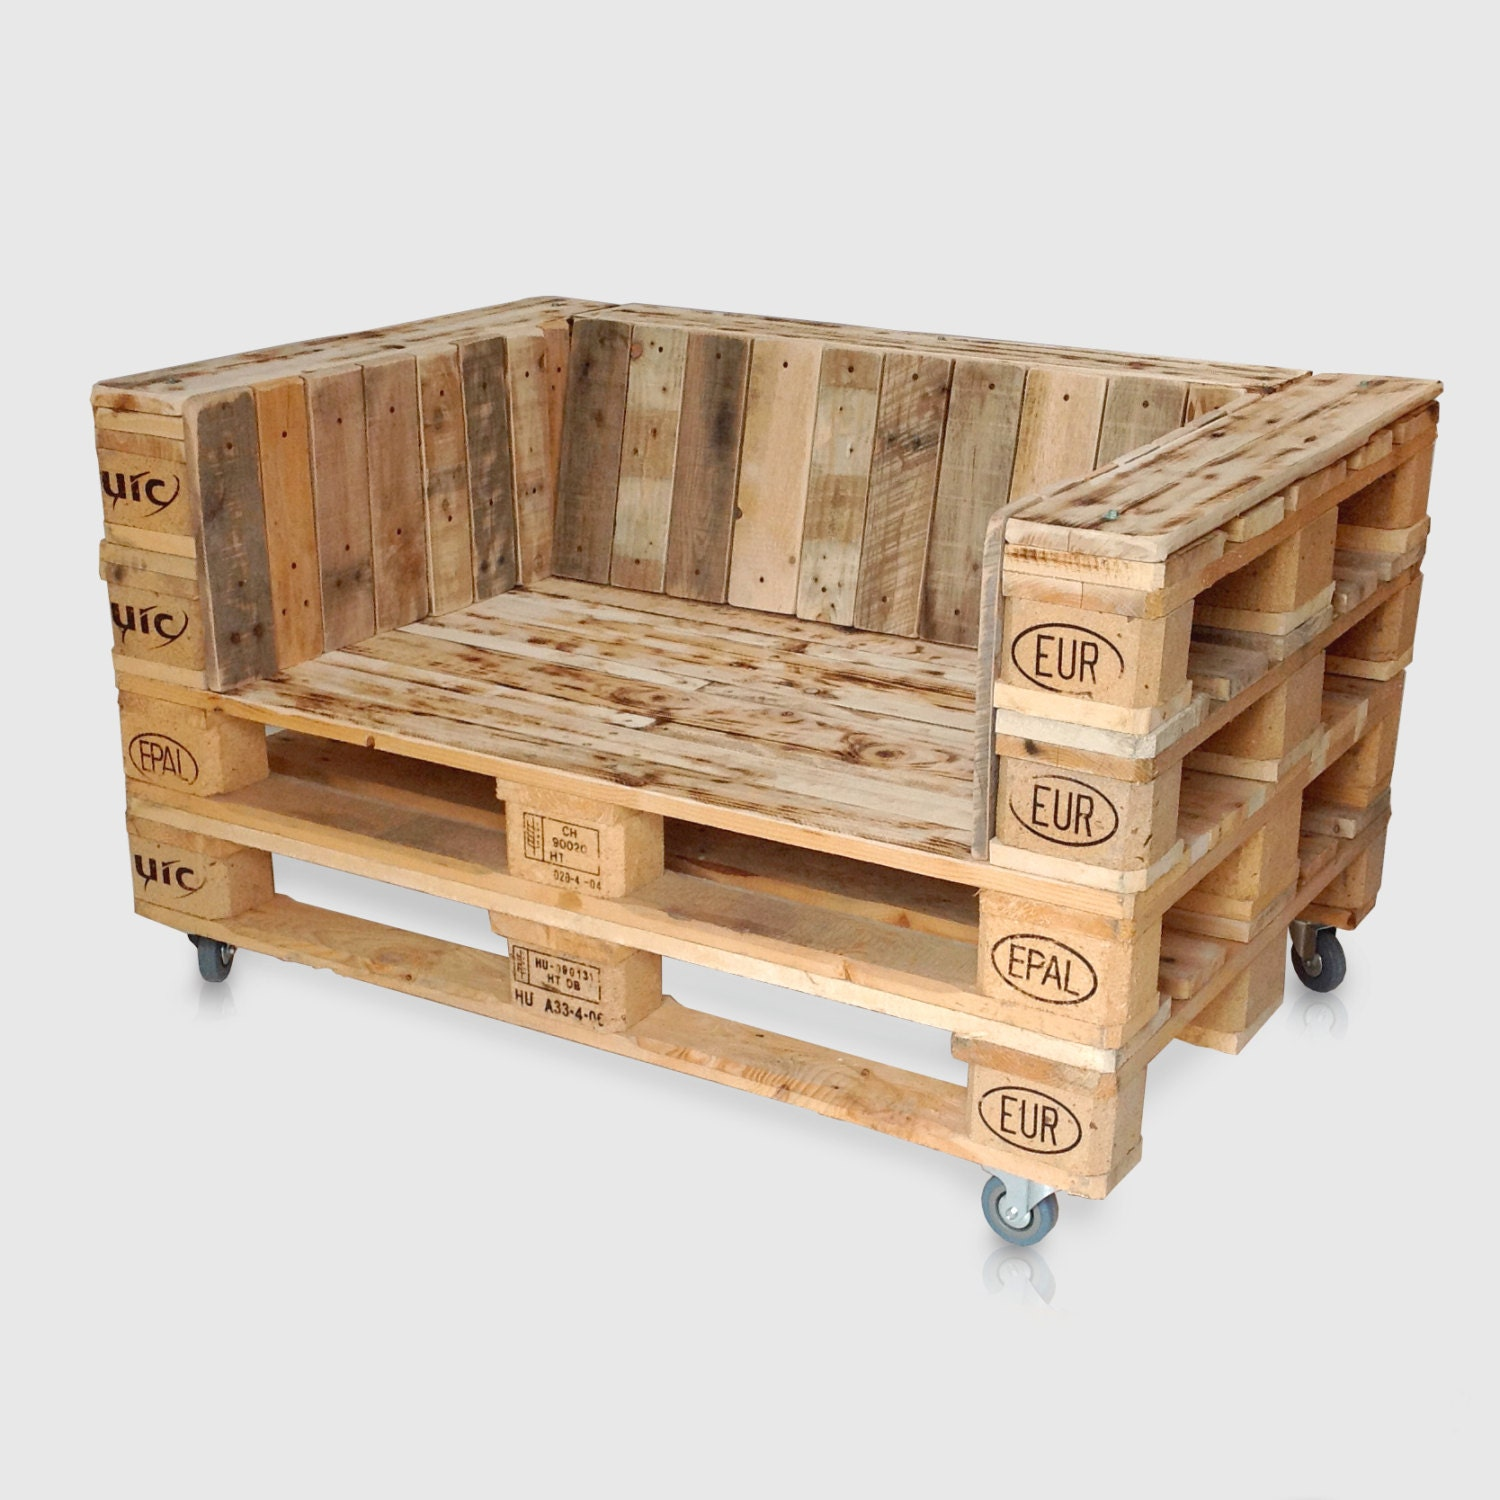 Pallet Chair: Pallet Sofa Chair / Love Seat For Home Or Garden. Upcycled